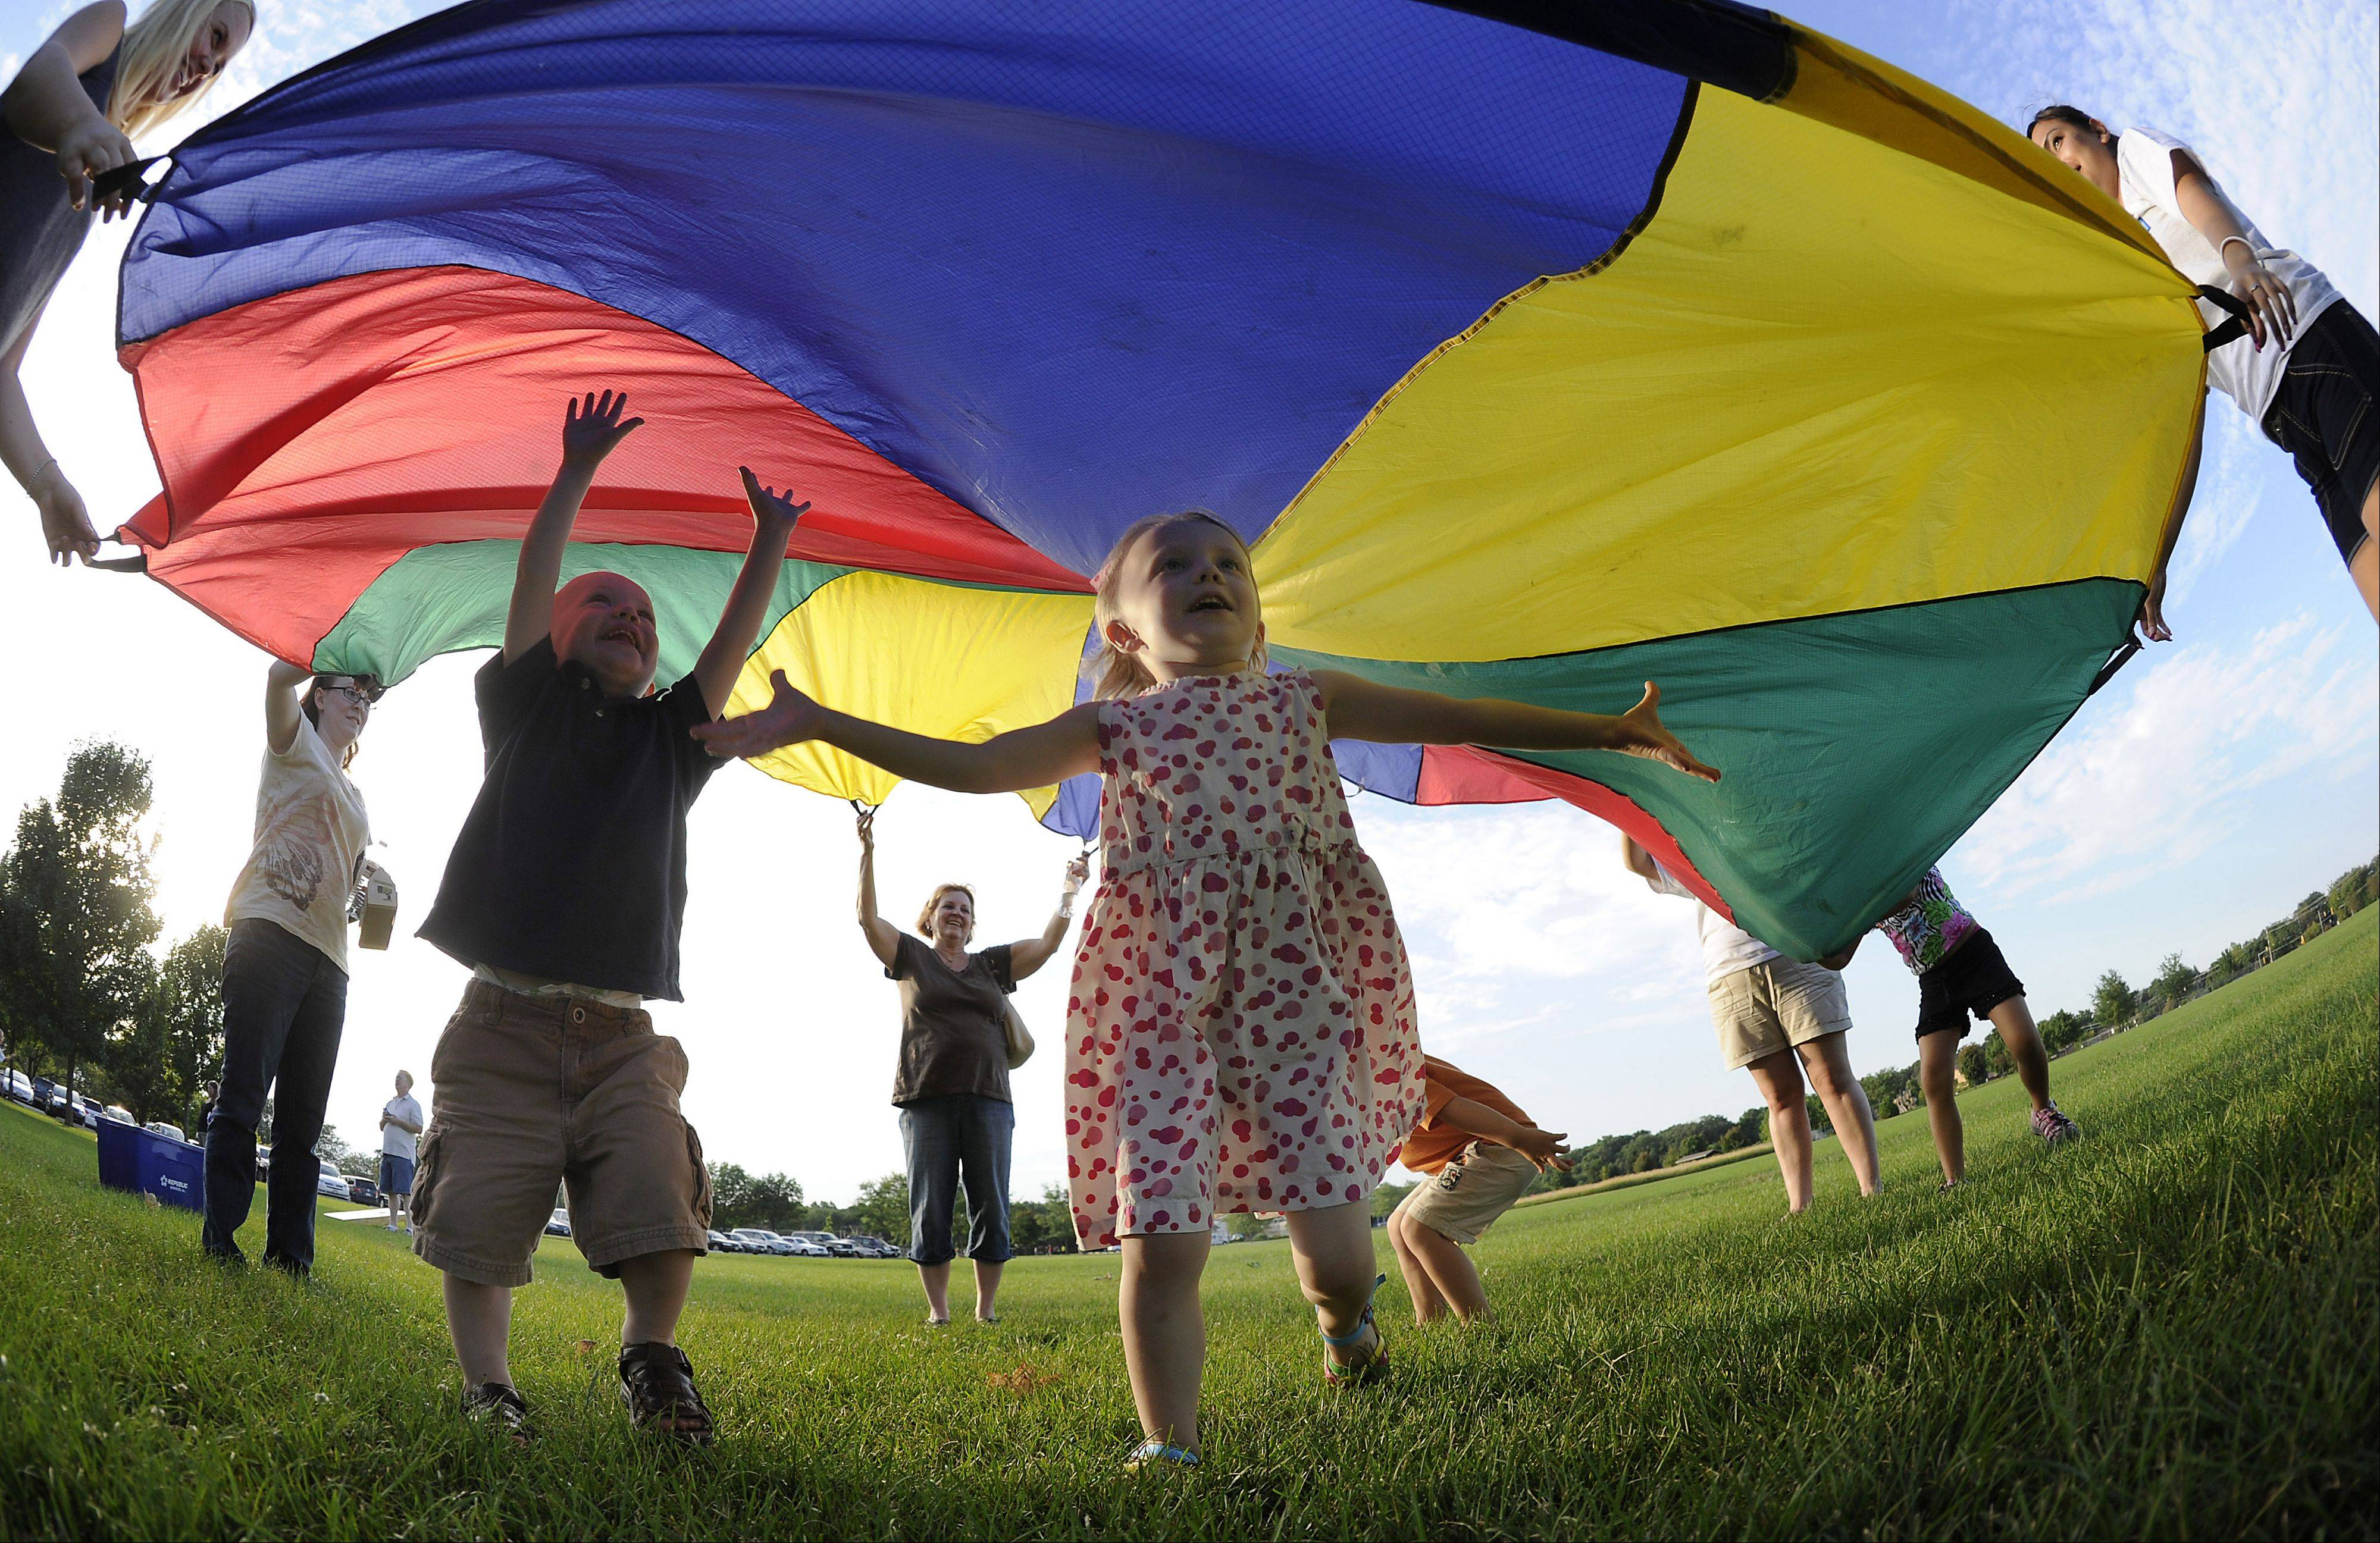 Northwest suburbs host variety of National Night Out events